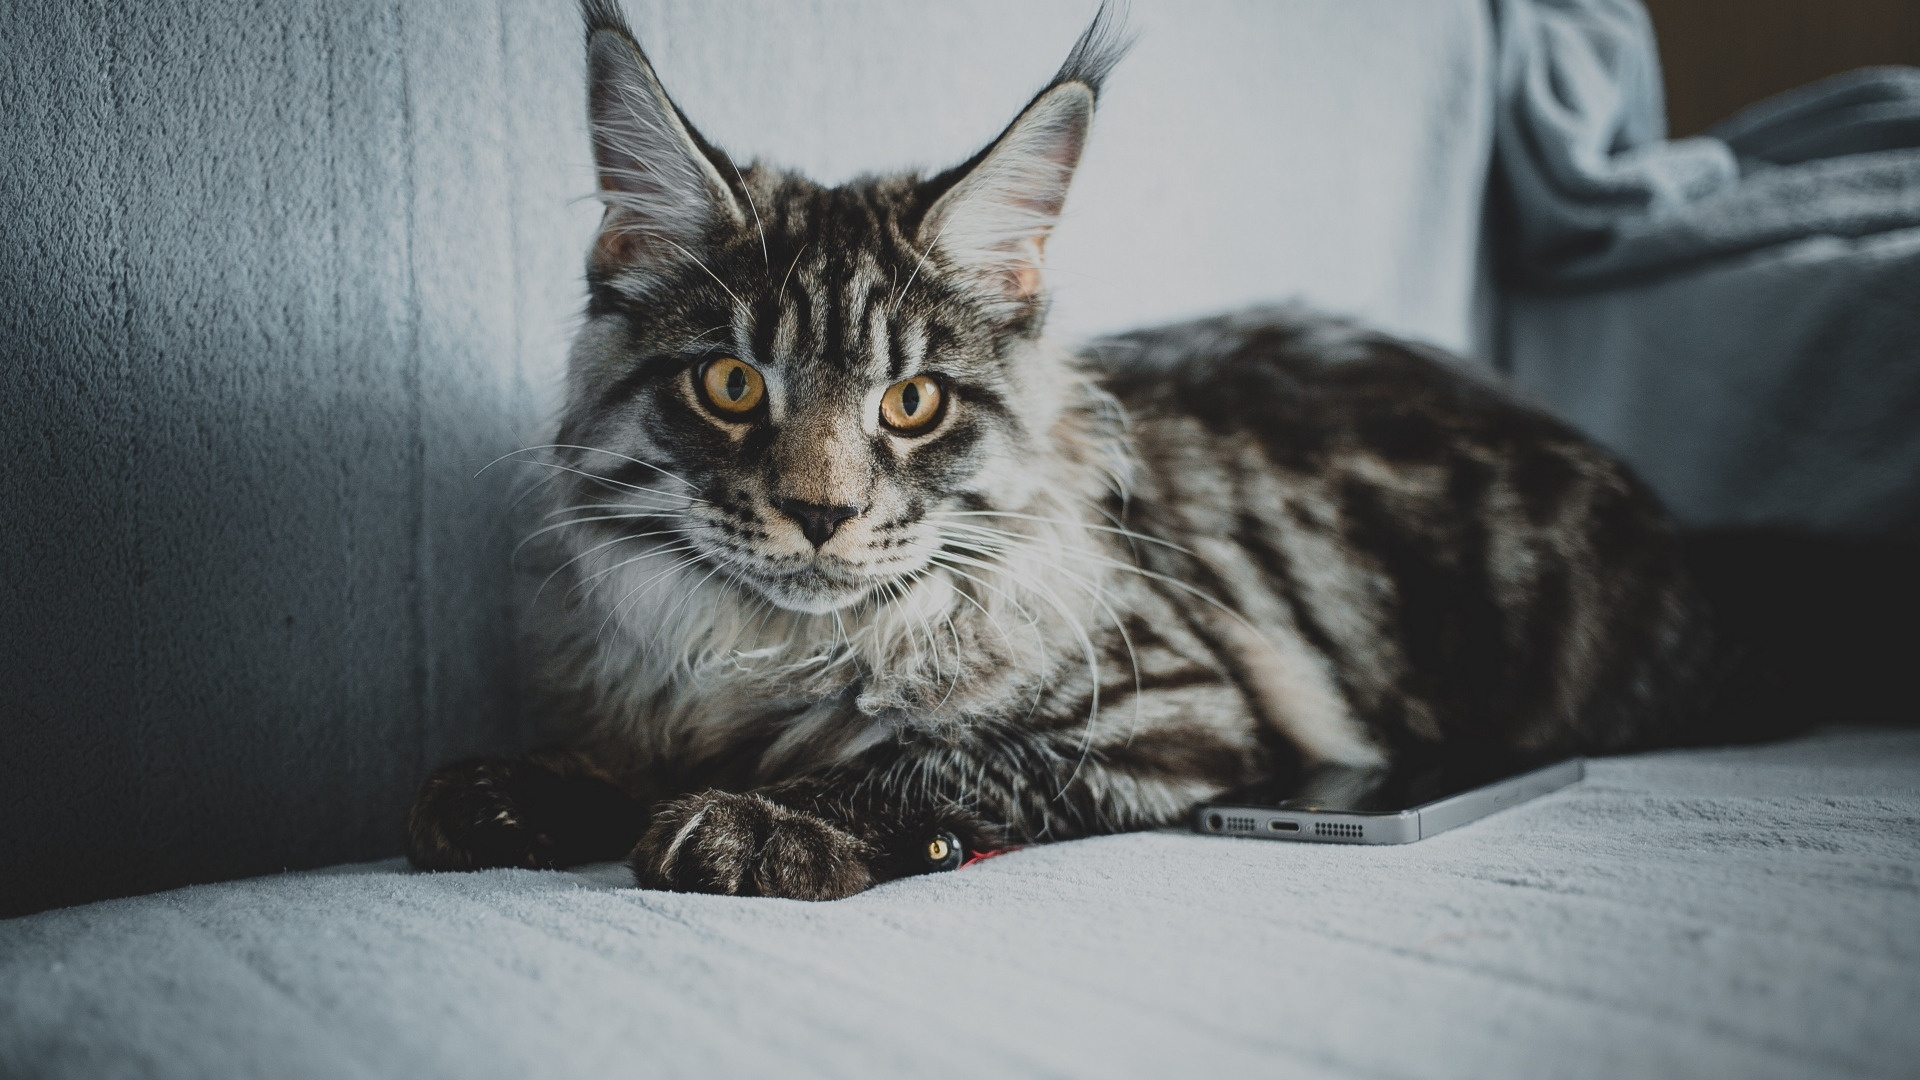 Maine Coon Cat wallpaper for desktop